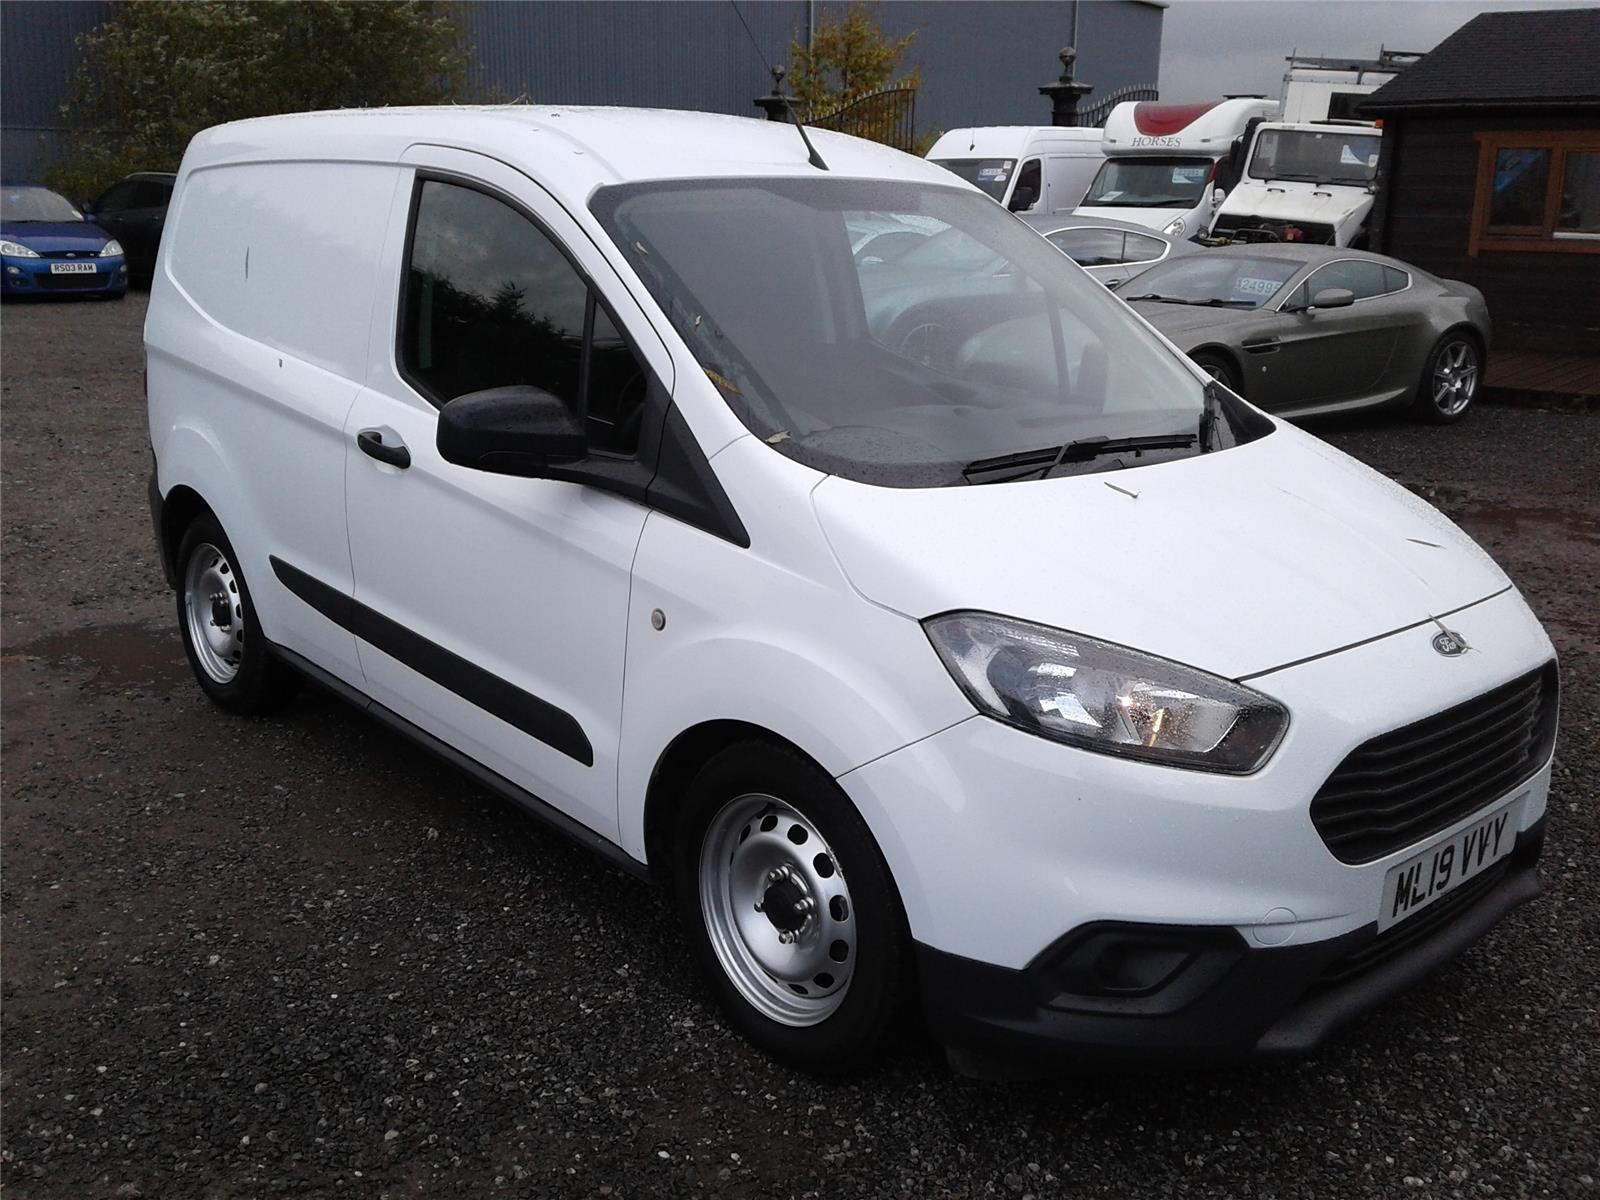 2019 FORD TRANSIT COURIER BASE TDCI 1499 DIESEL MANUAL 6 Speed PANEL VAN